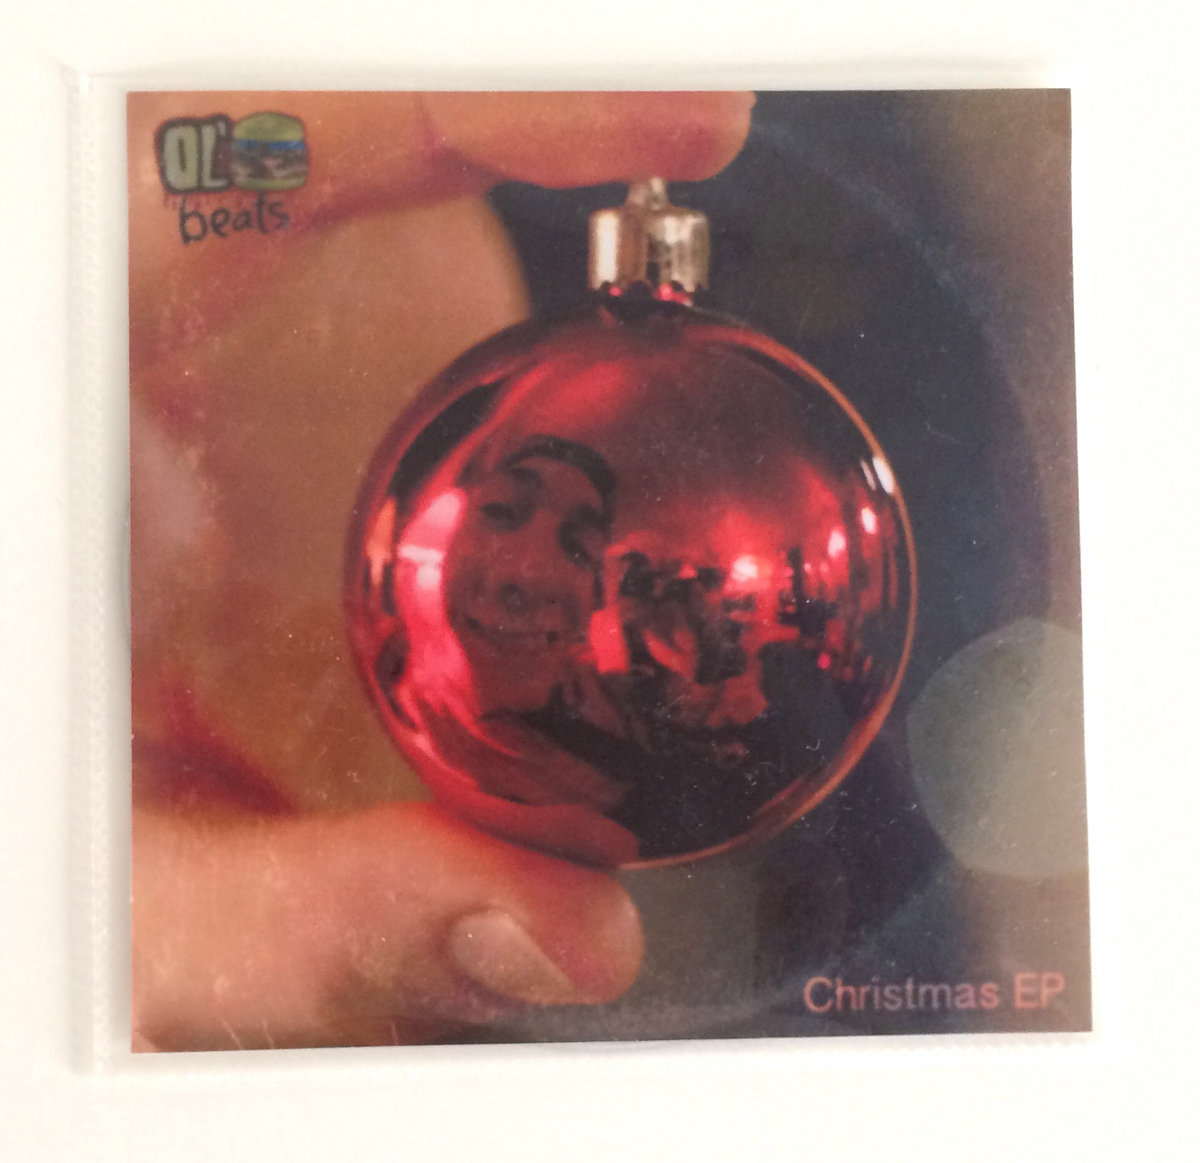 Only 30 copies are made, and the CD has not been available for purchase until now. Includes unlimited streaming of Christmas EP via the ...